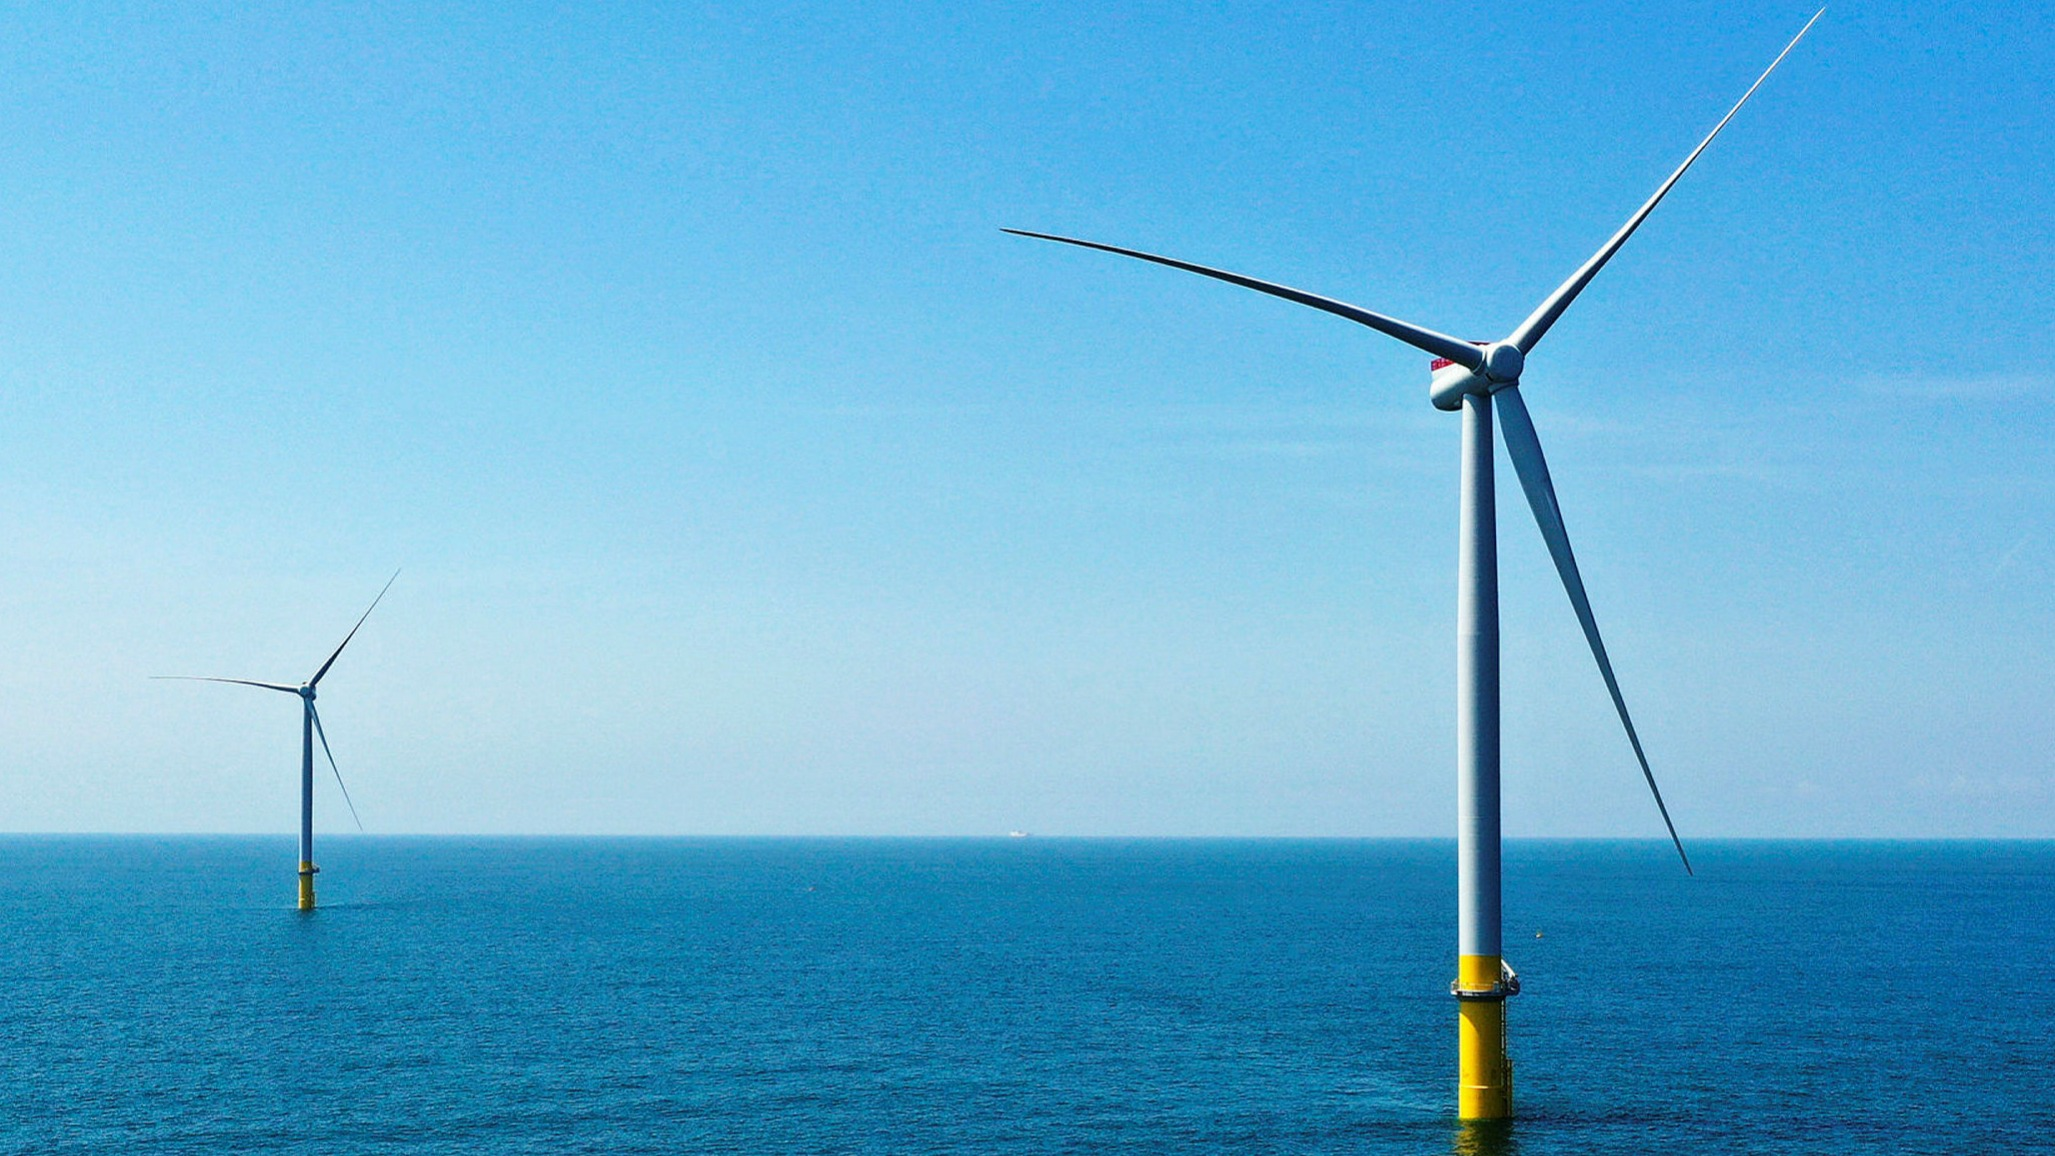 ft.com - Gregory Meyer in New York - US offshore wind power spending has oil in its sights